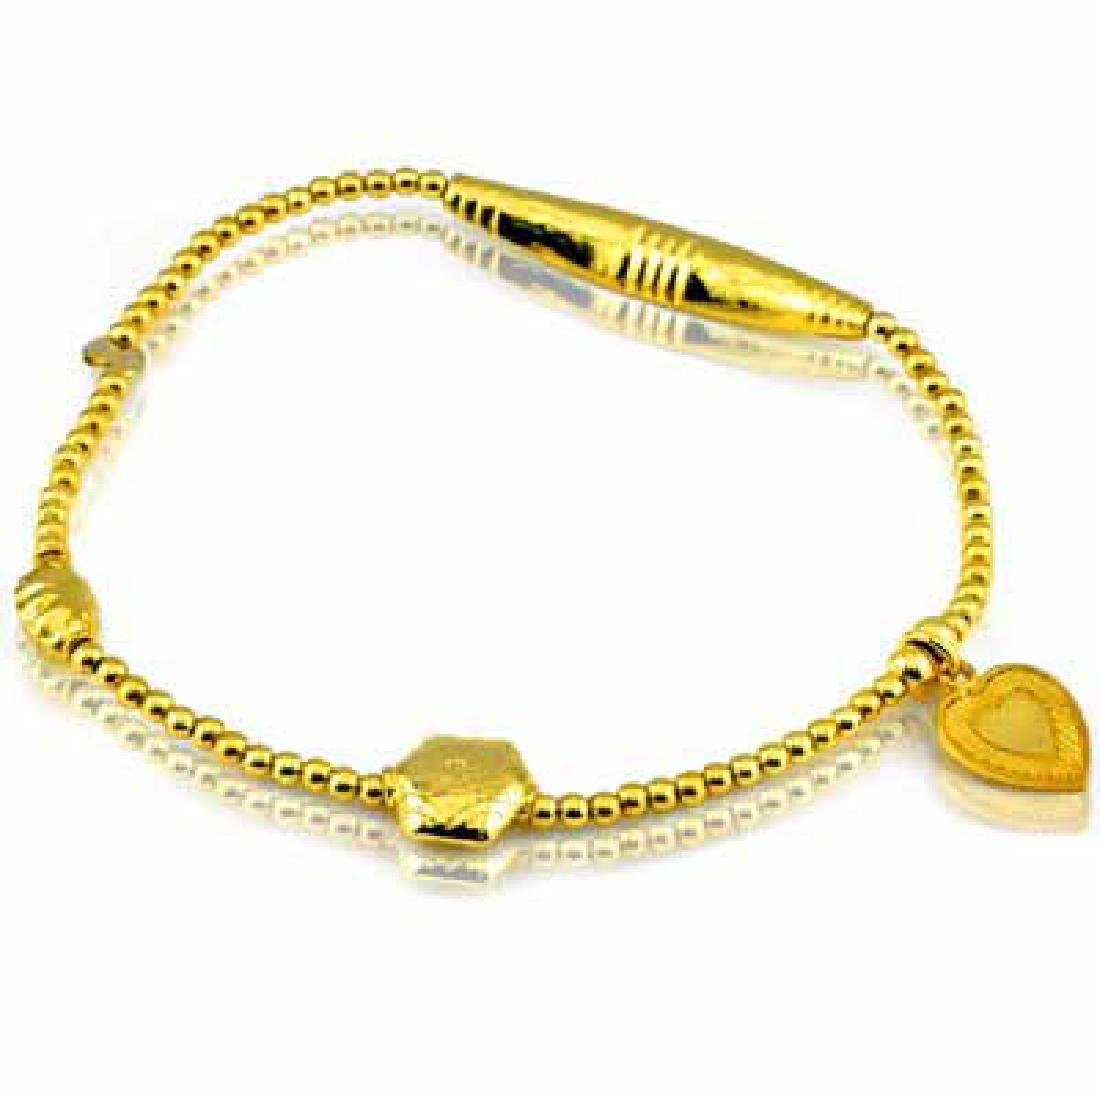 24K GOLD PLATED CHARM AND BEAD STRECHABLE BRACELET 0.9